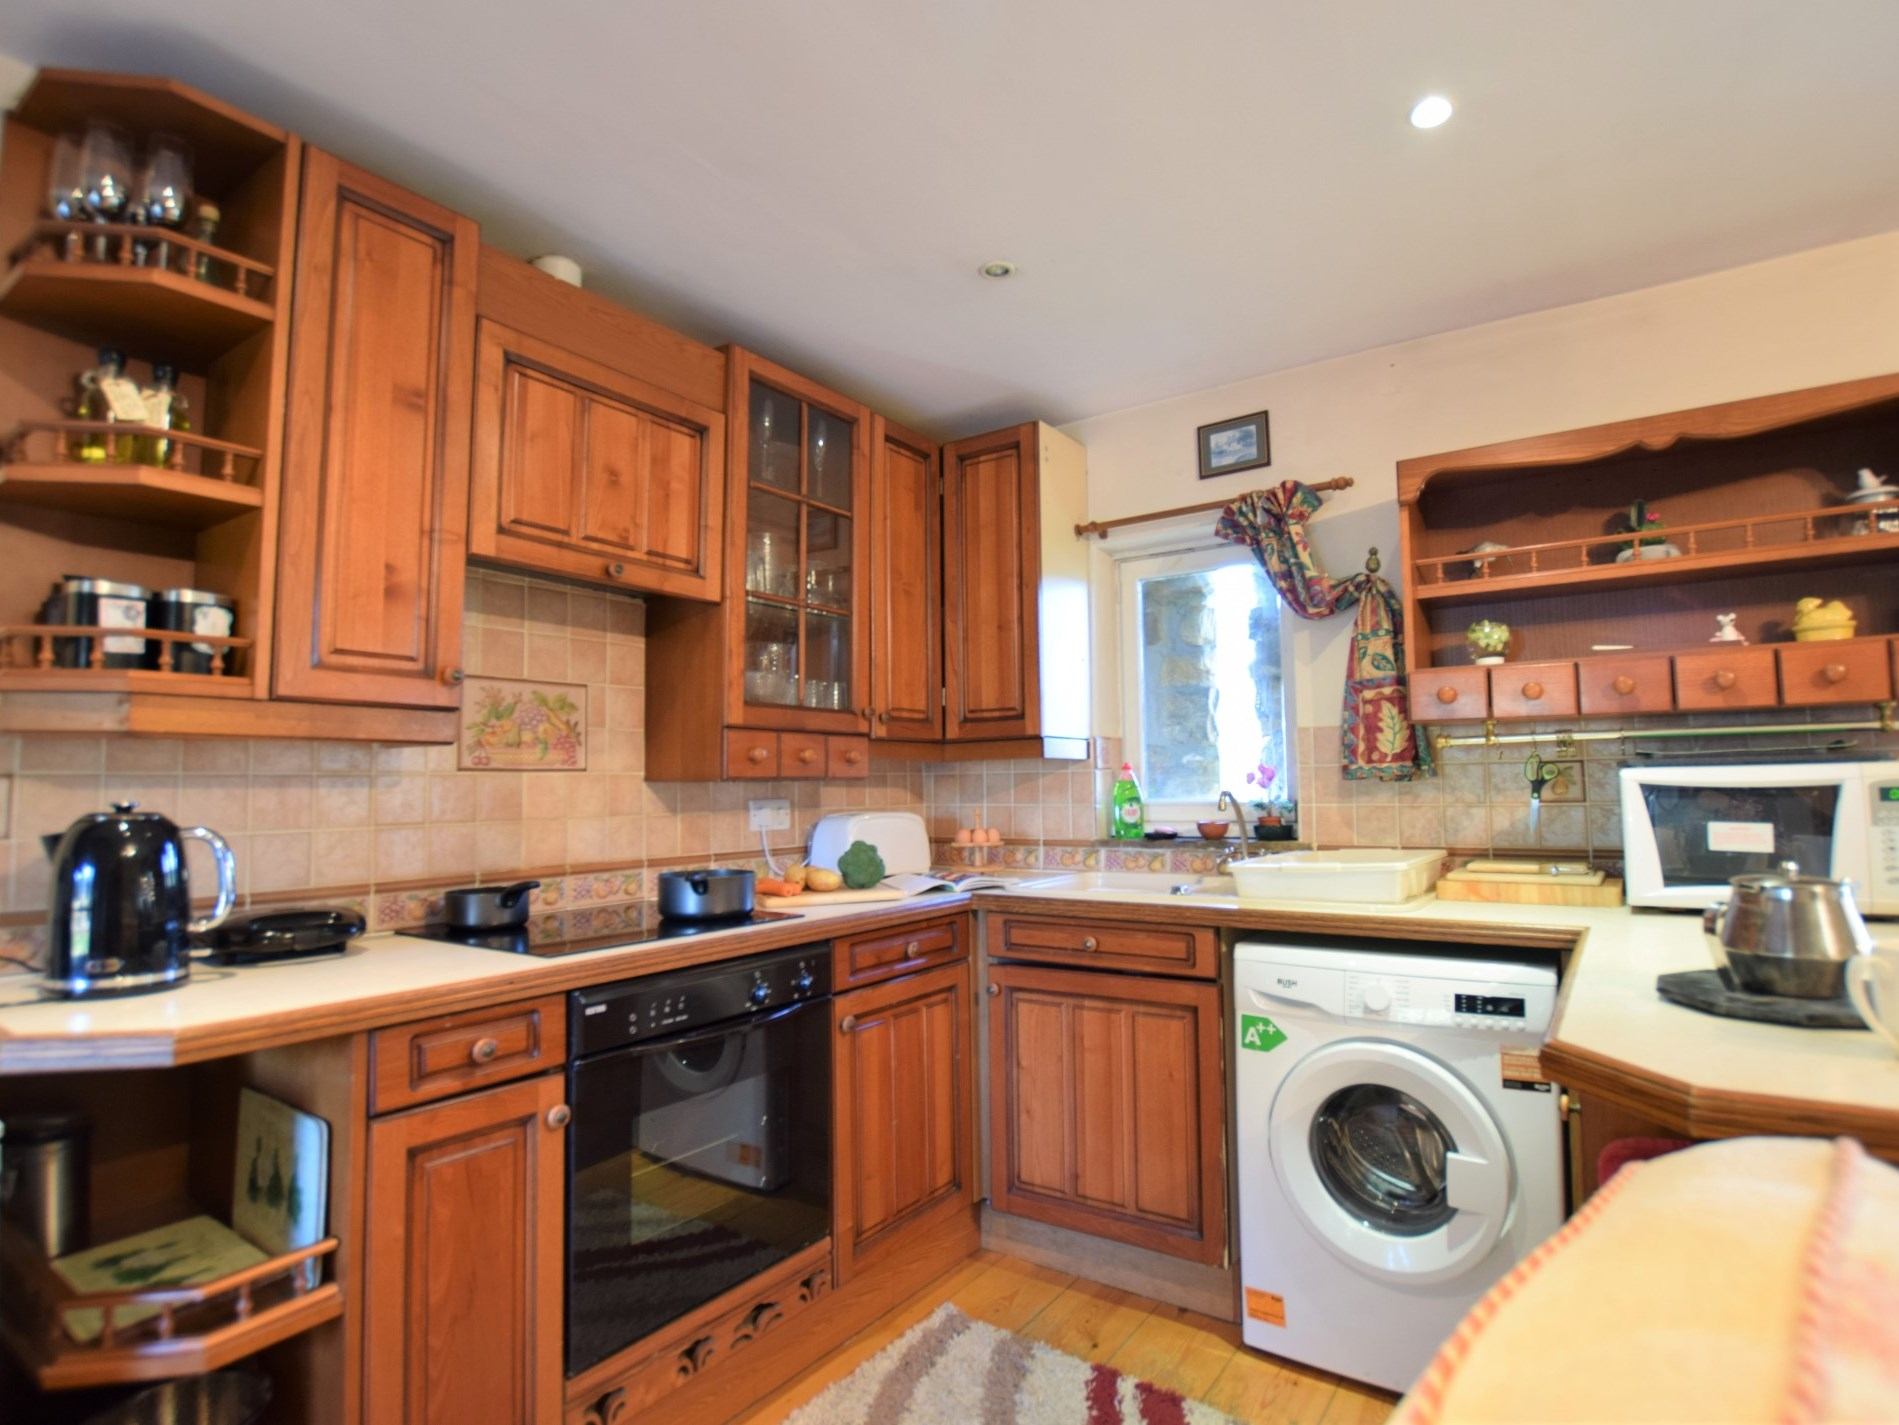 2 Bedroom Cottage in Ripon, Yorkshire Dales